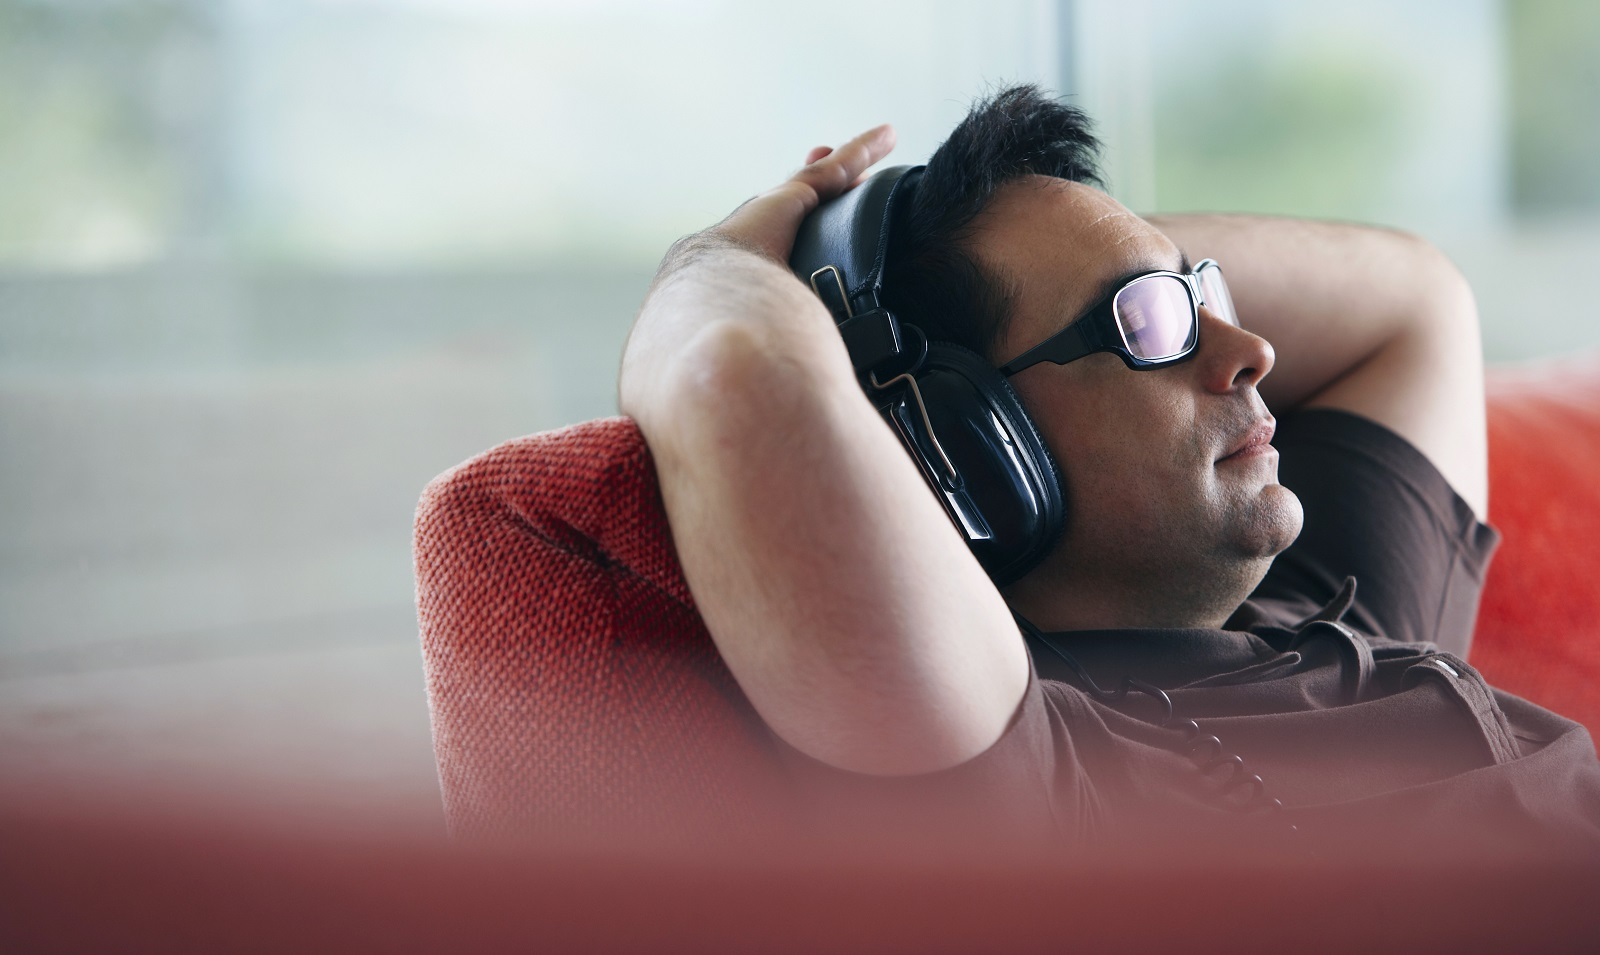 Man relaxing at home listening to headphones on couch.